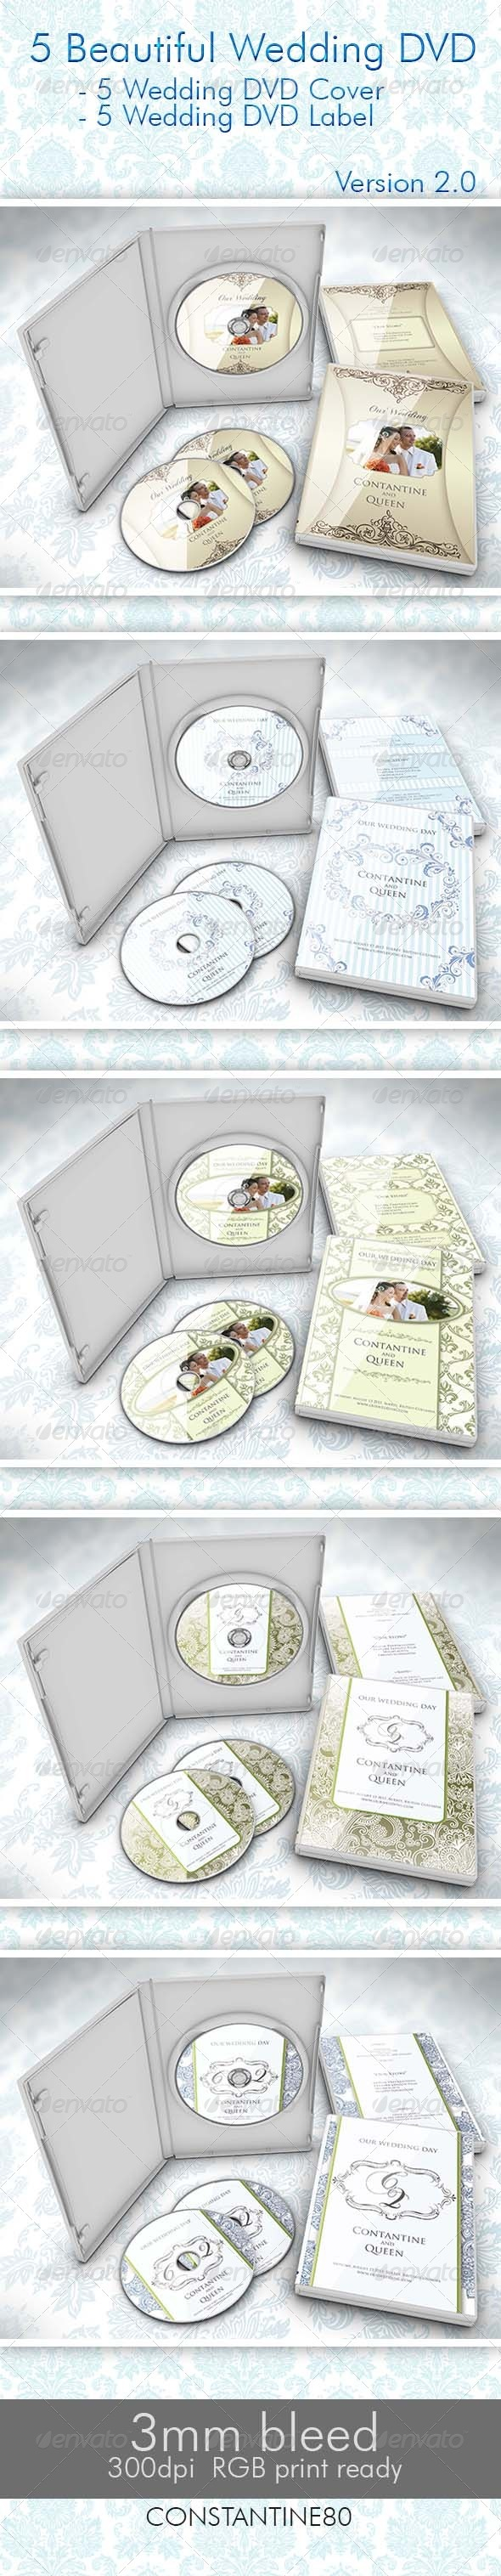 5 Beautiful Wedding DVD Ver 2.0 - Weddings Cards & Invites